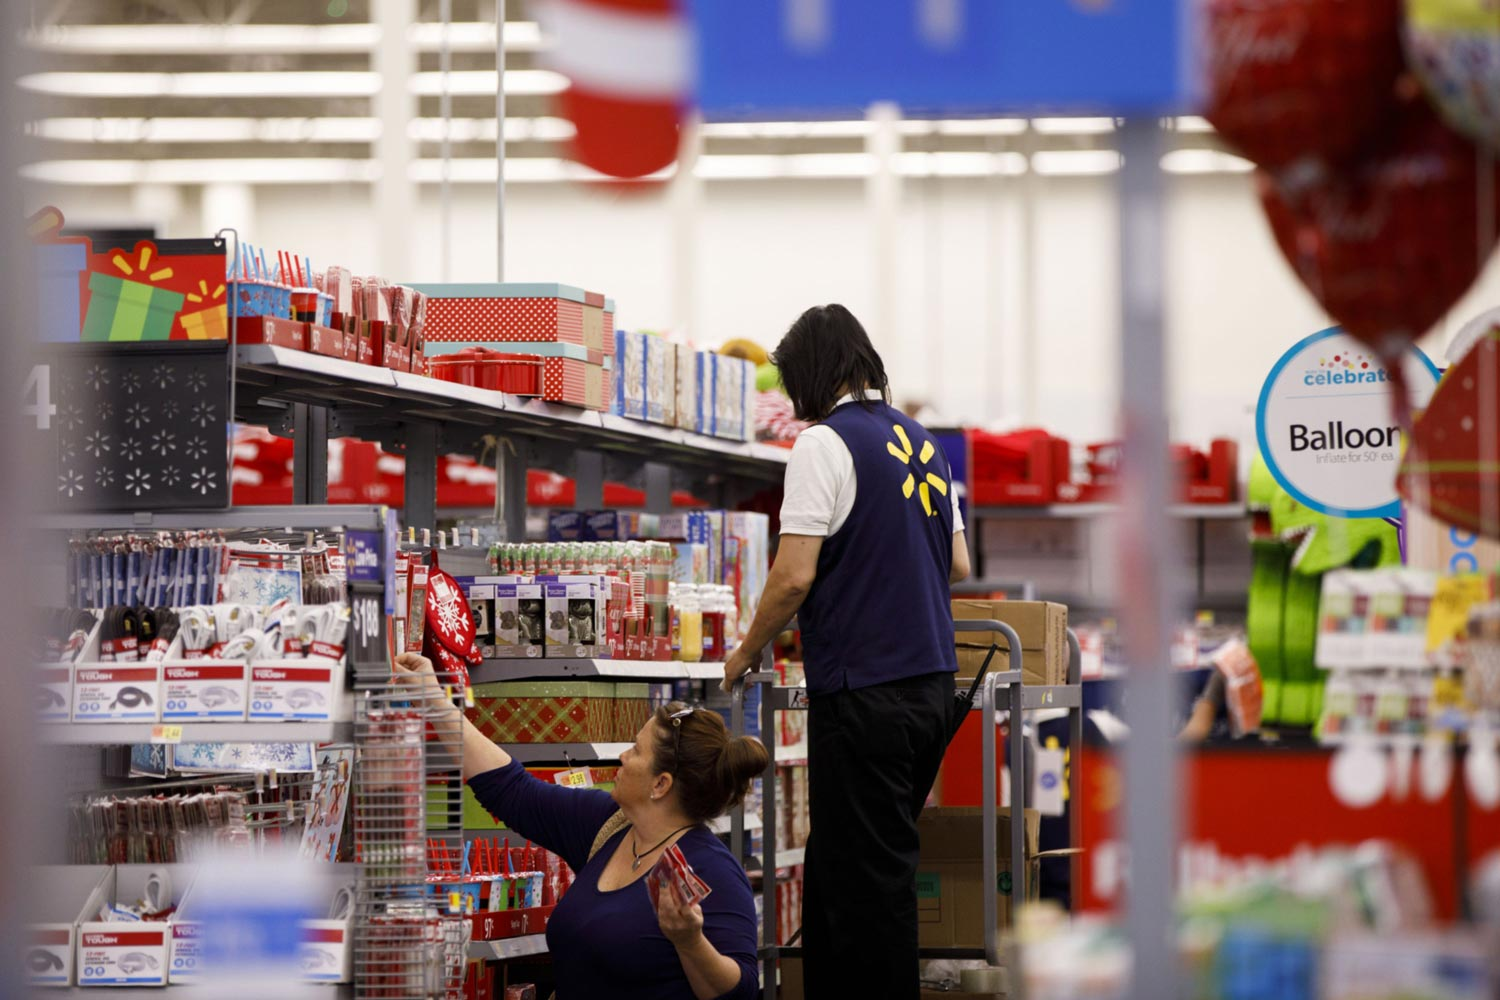 Walmart will close for Thanksgiving, ratcheting down holiday expectations